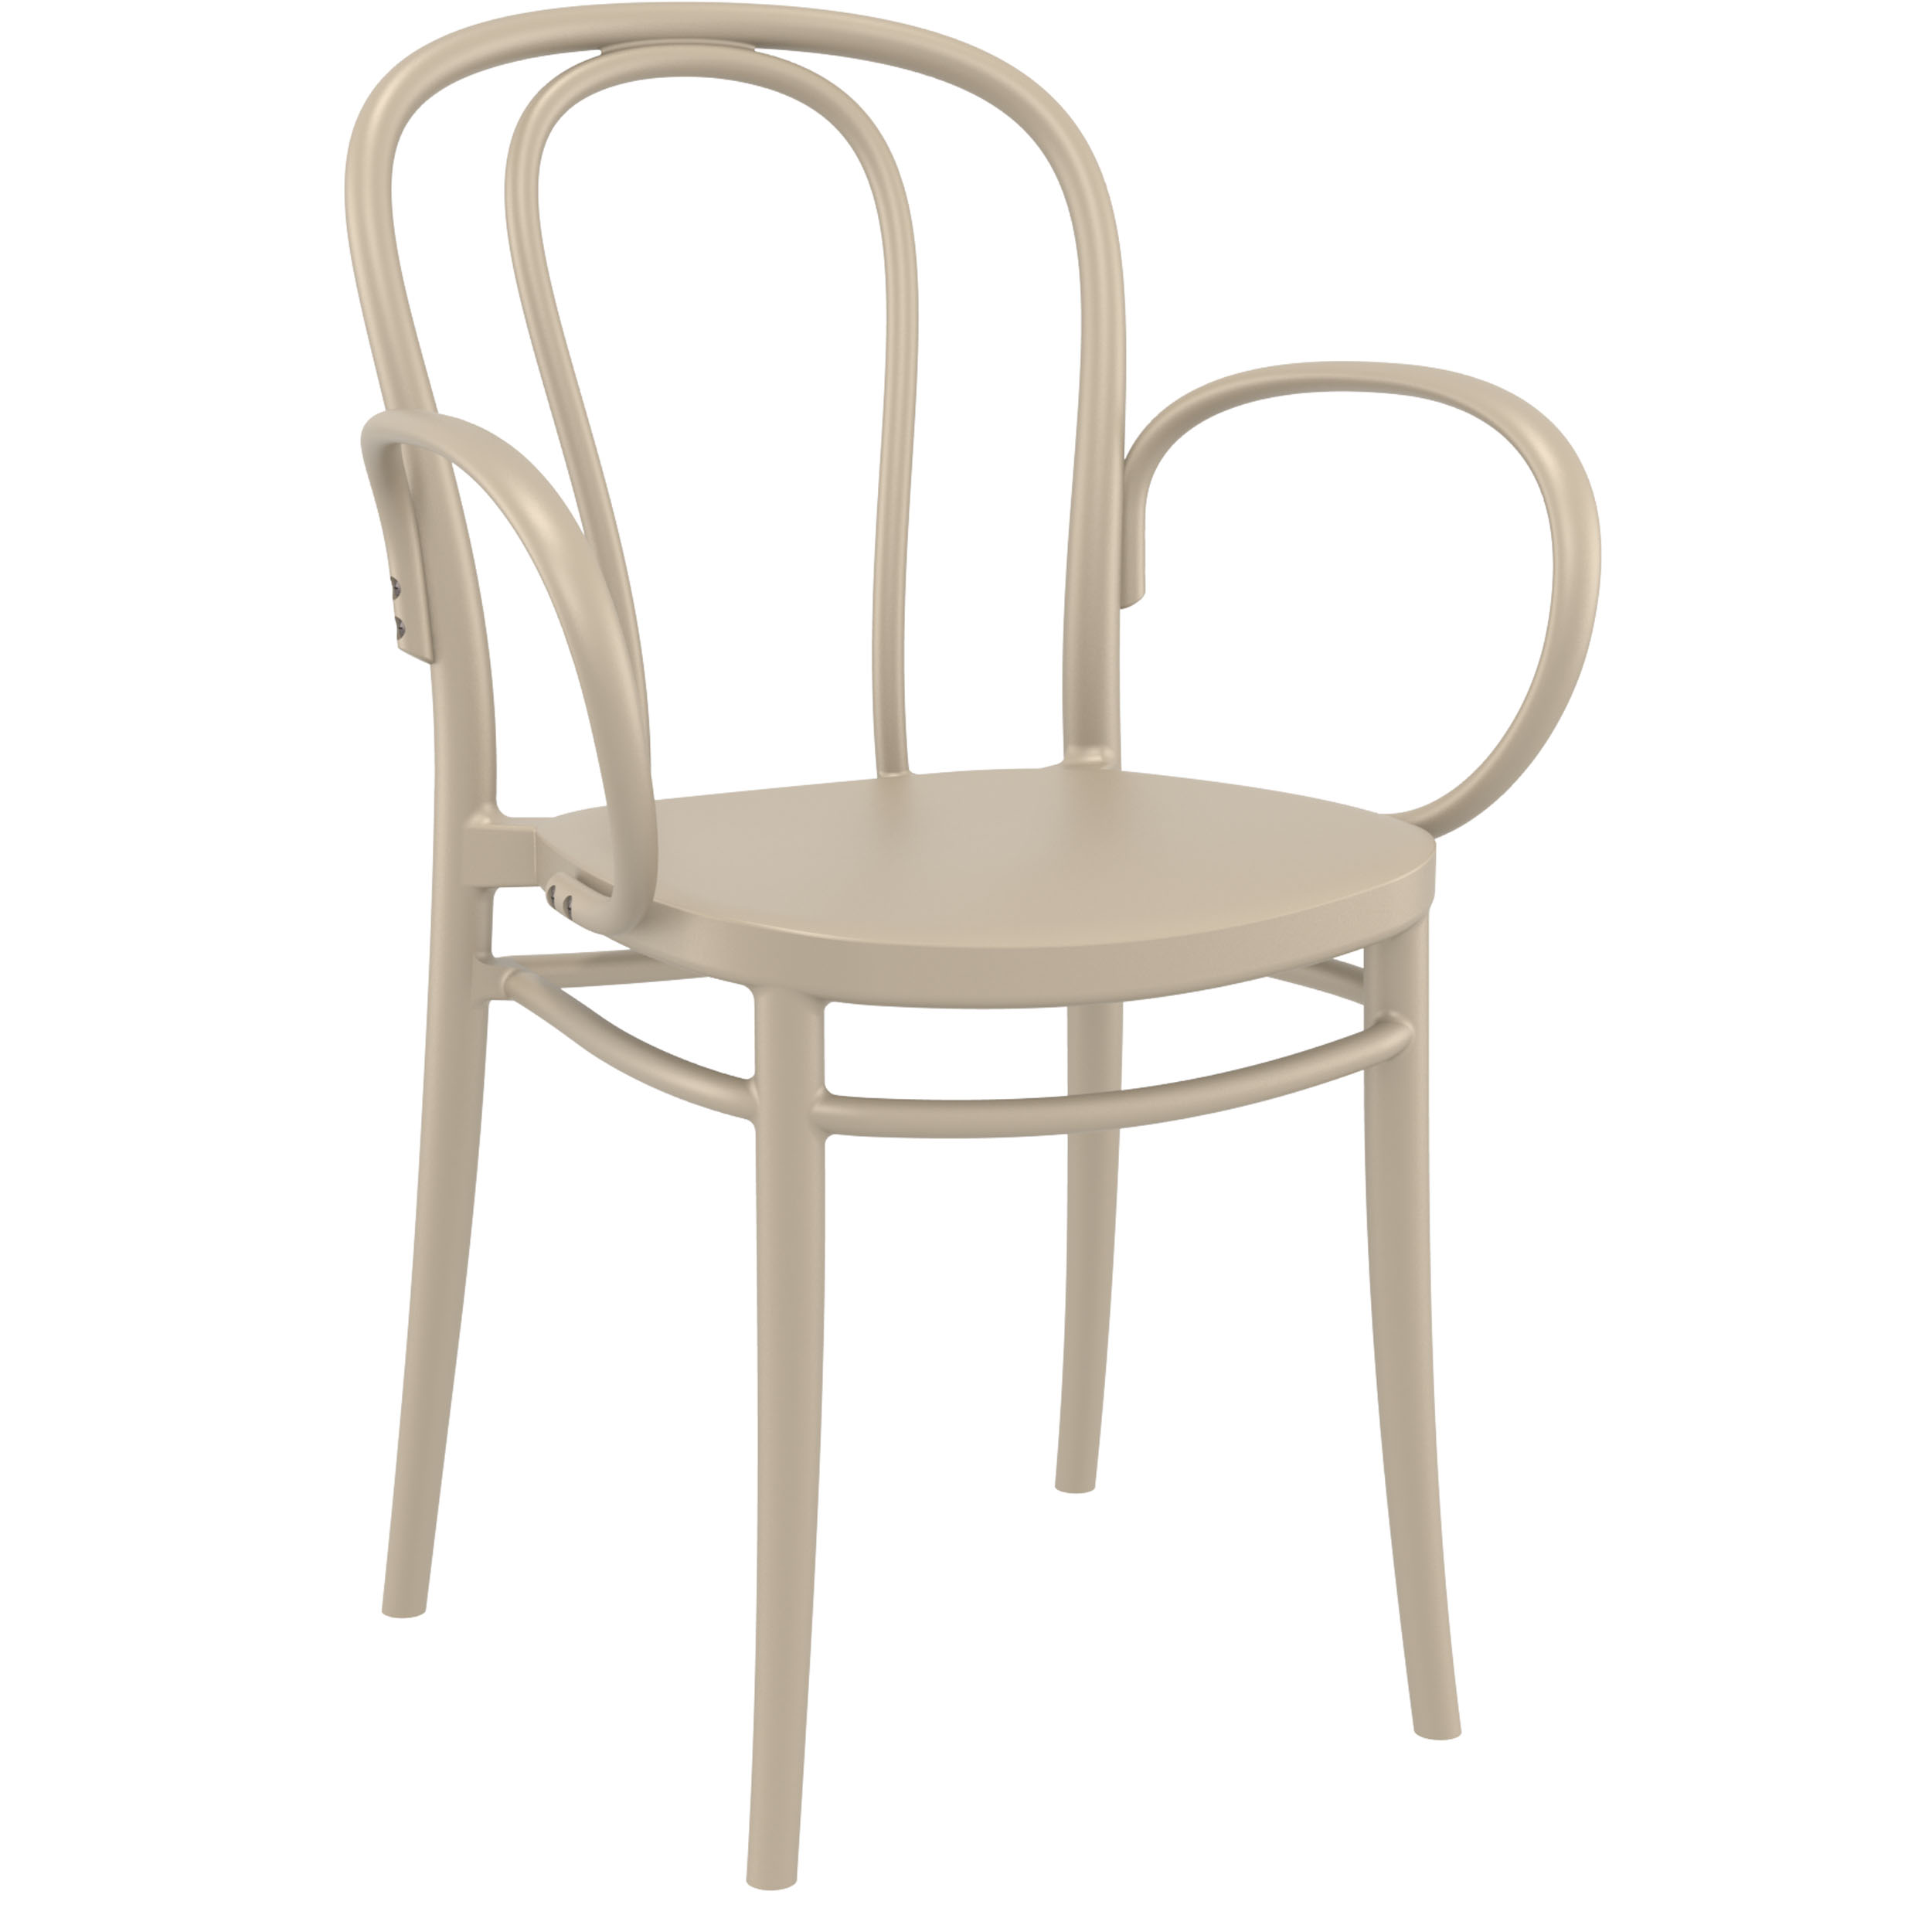 Victor XL Chair - Taupe